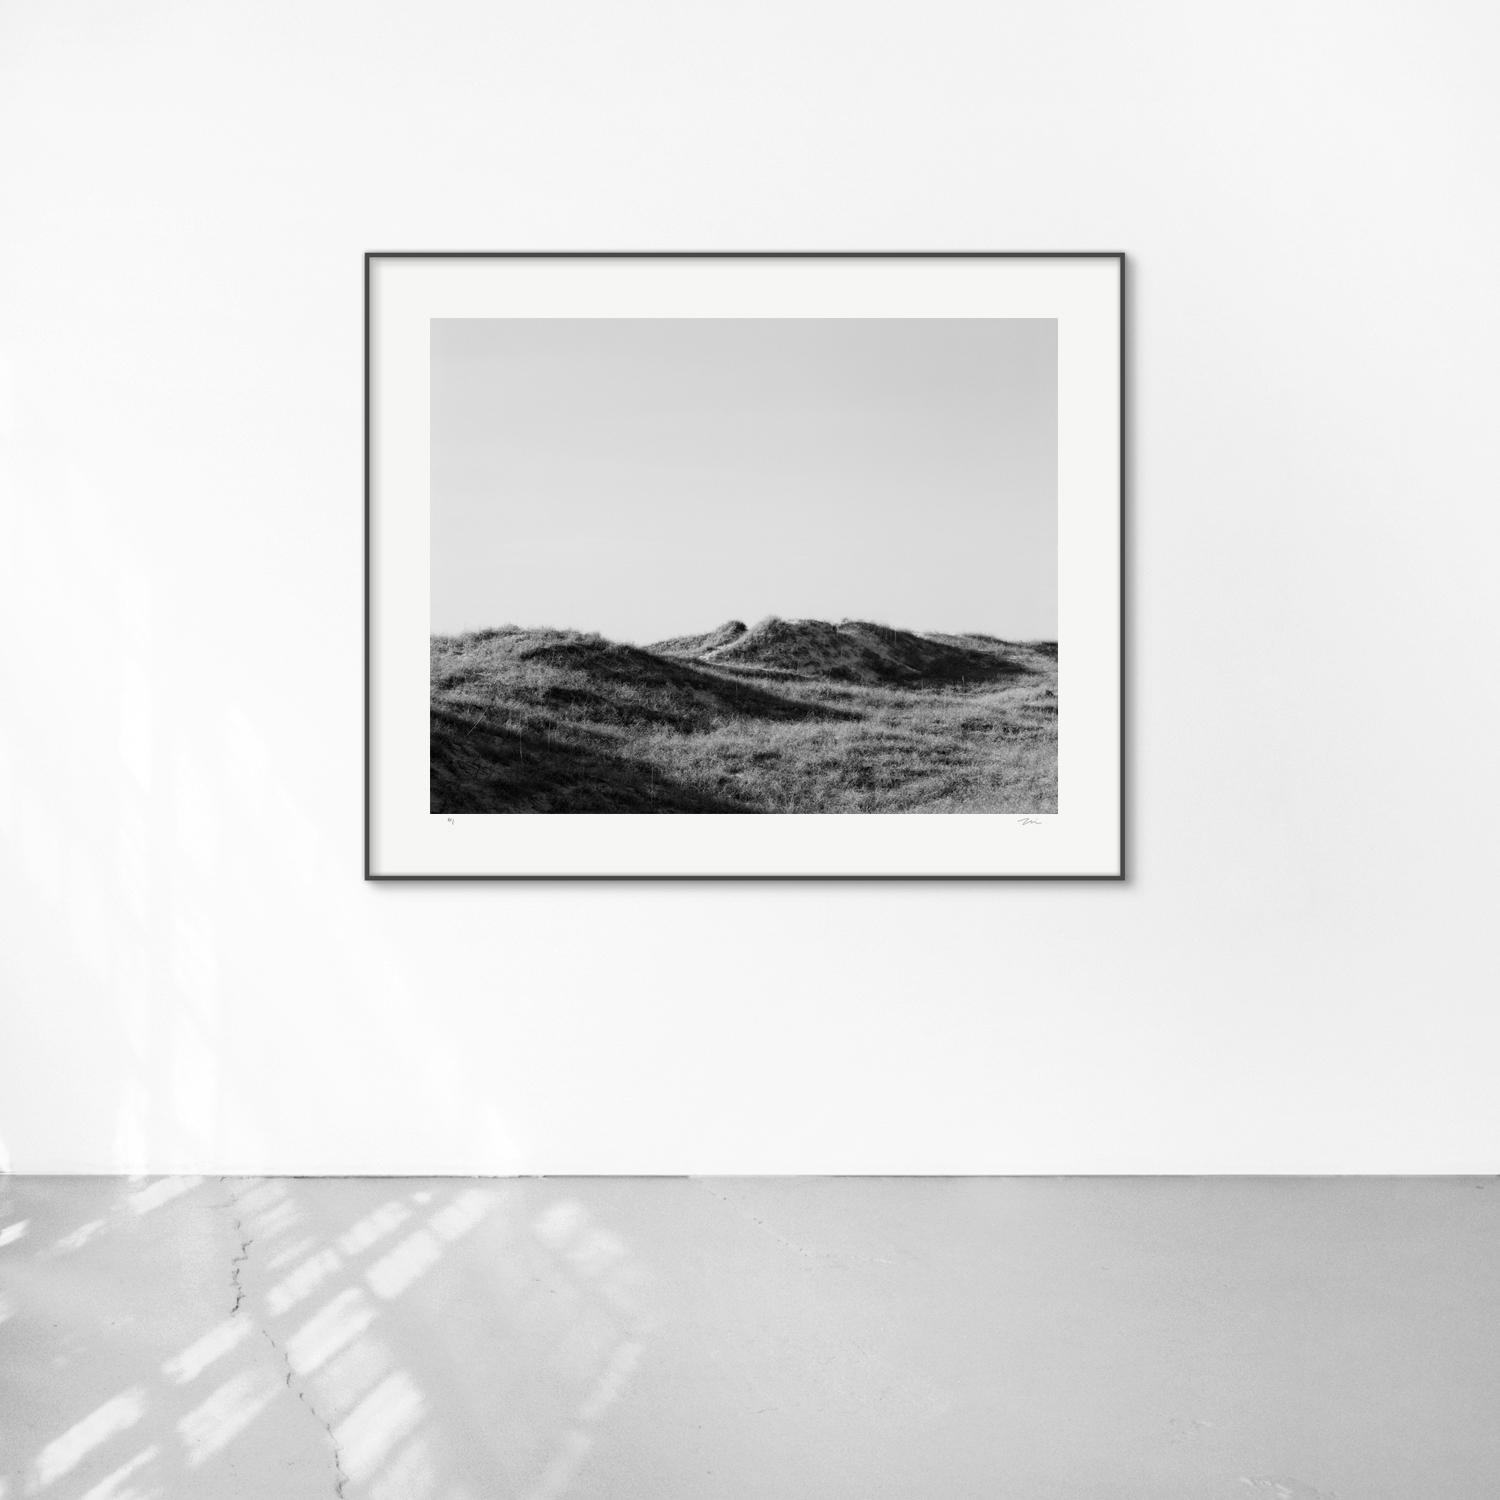 Shackleford I, 30x40, framed 38x48. Silver gelatin photograph.